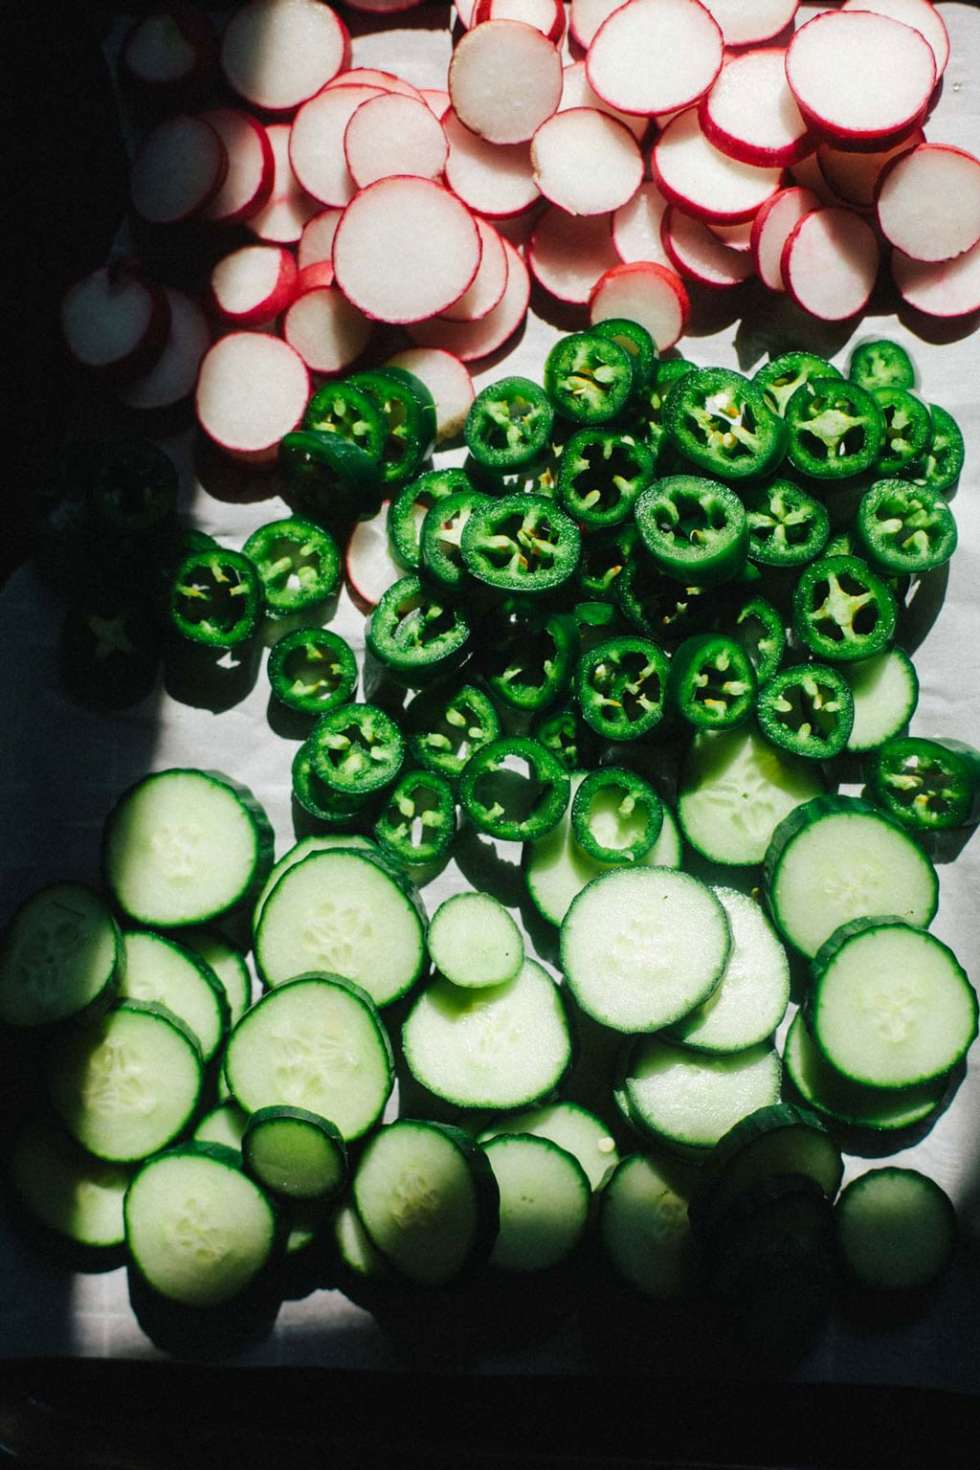 A cutting board with thinly sliced radishes, jalapenos and cucumbers.